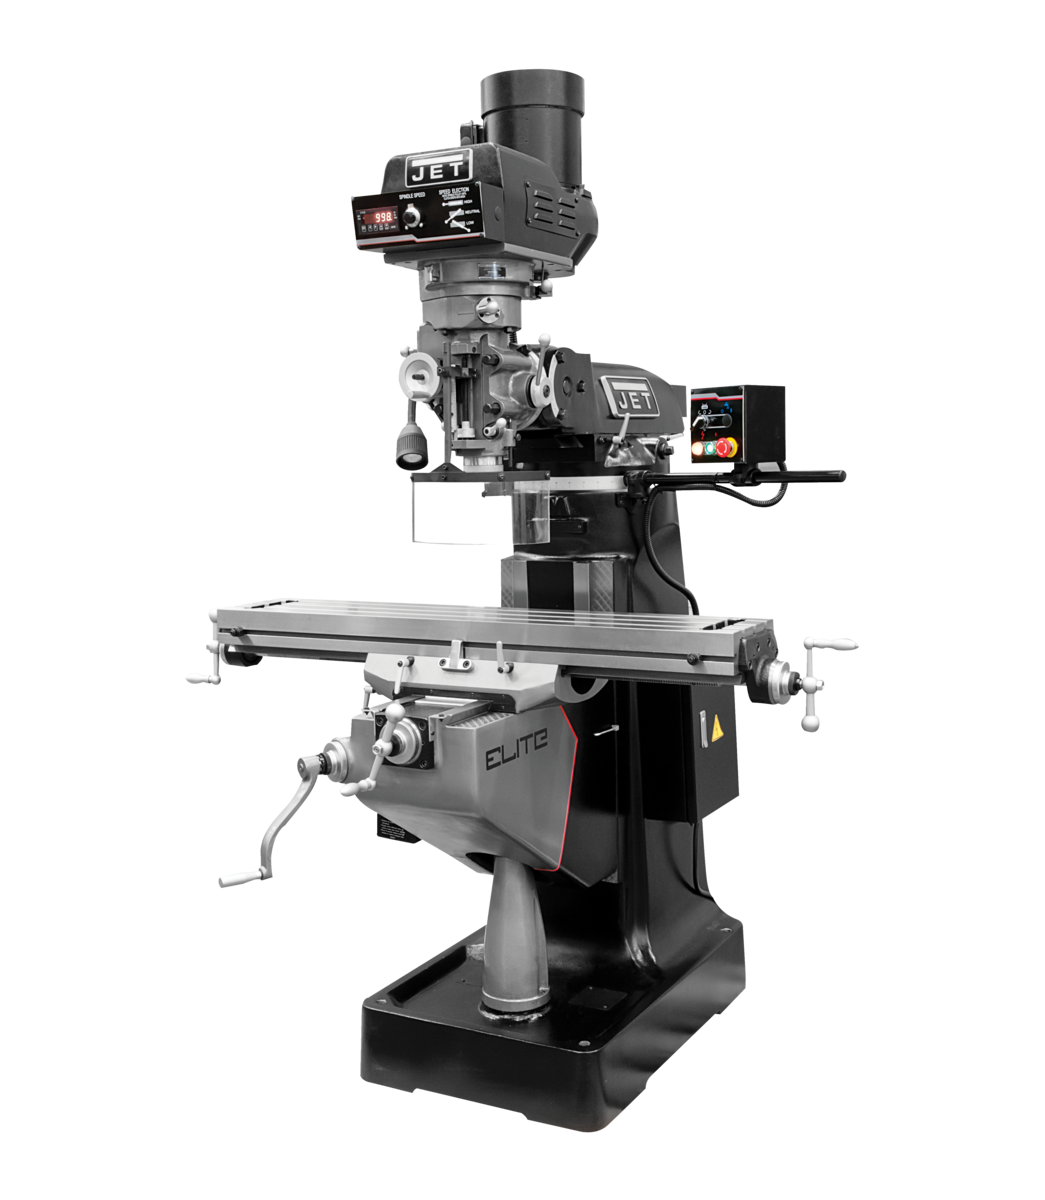 EVS-949 Mill with 3-Axis Newall DP700 (Quill) DRO and X, Y, Z-Axis JET Powerfeeds and USA Made Air Draw Bar